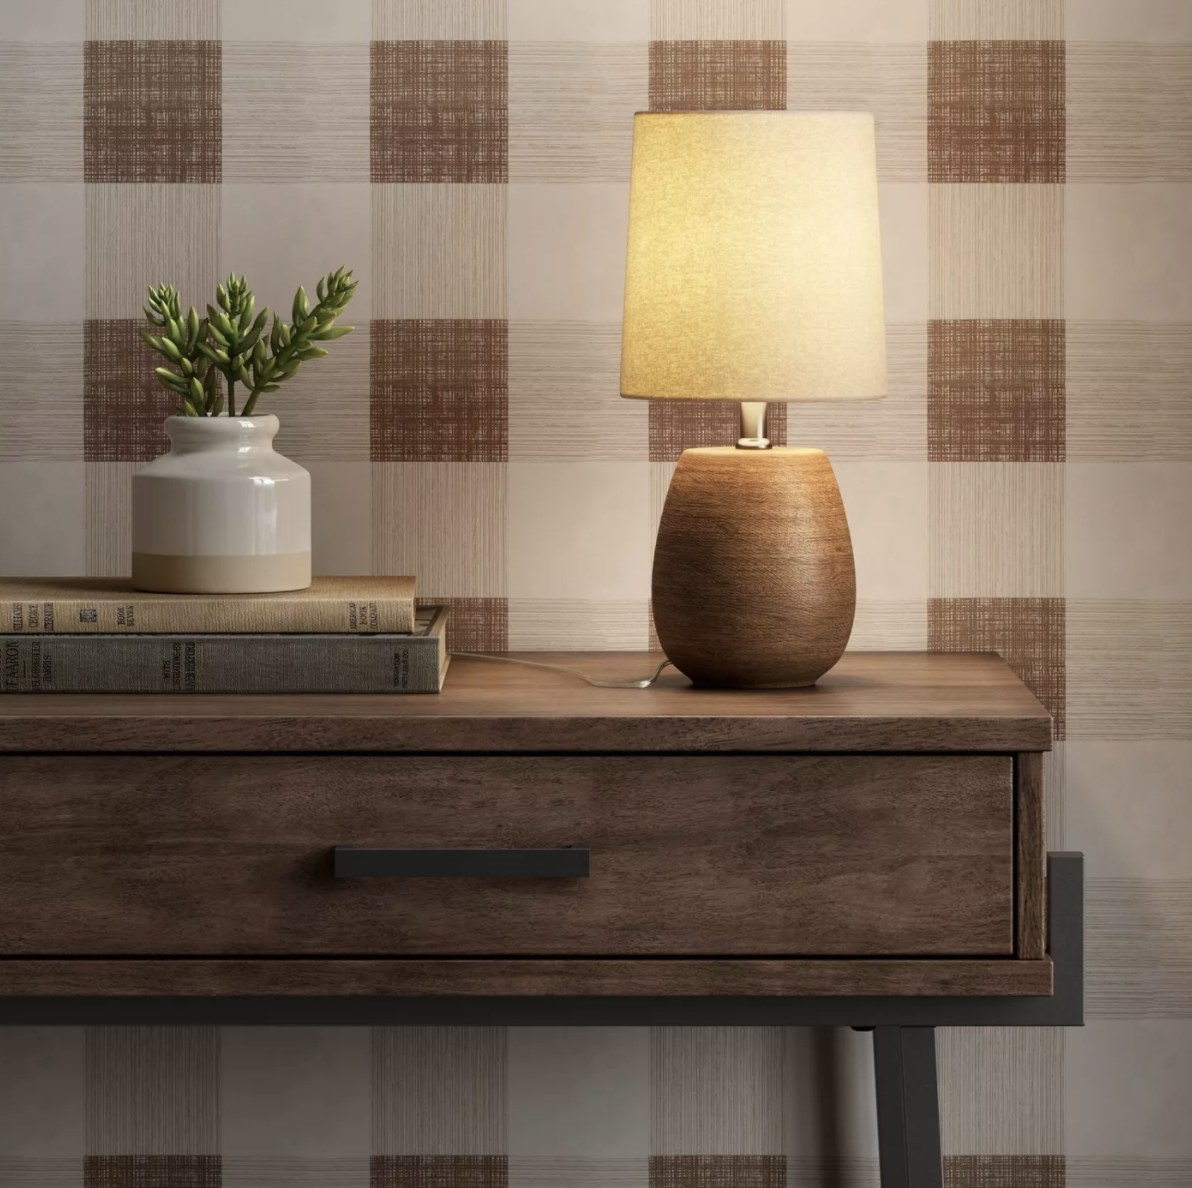 The brown wood lamp has a yellow glow and is on top of a table